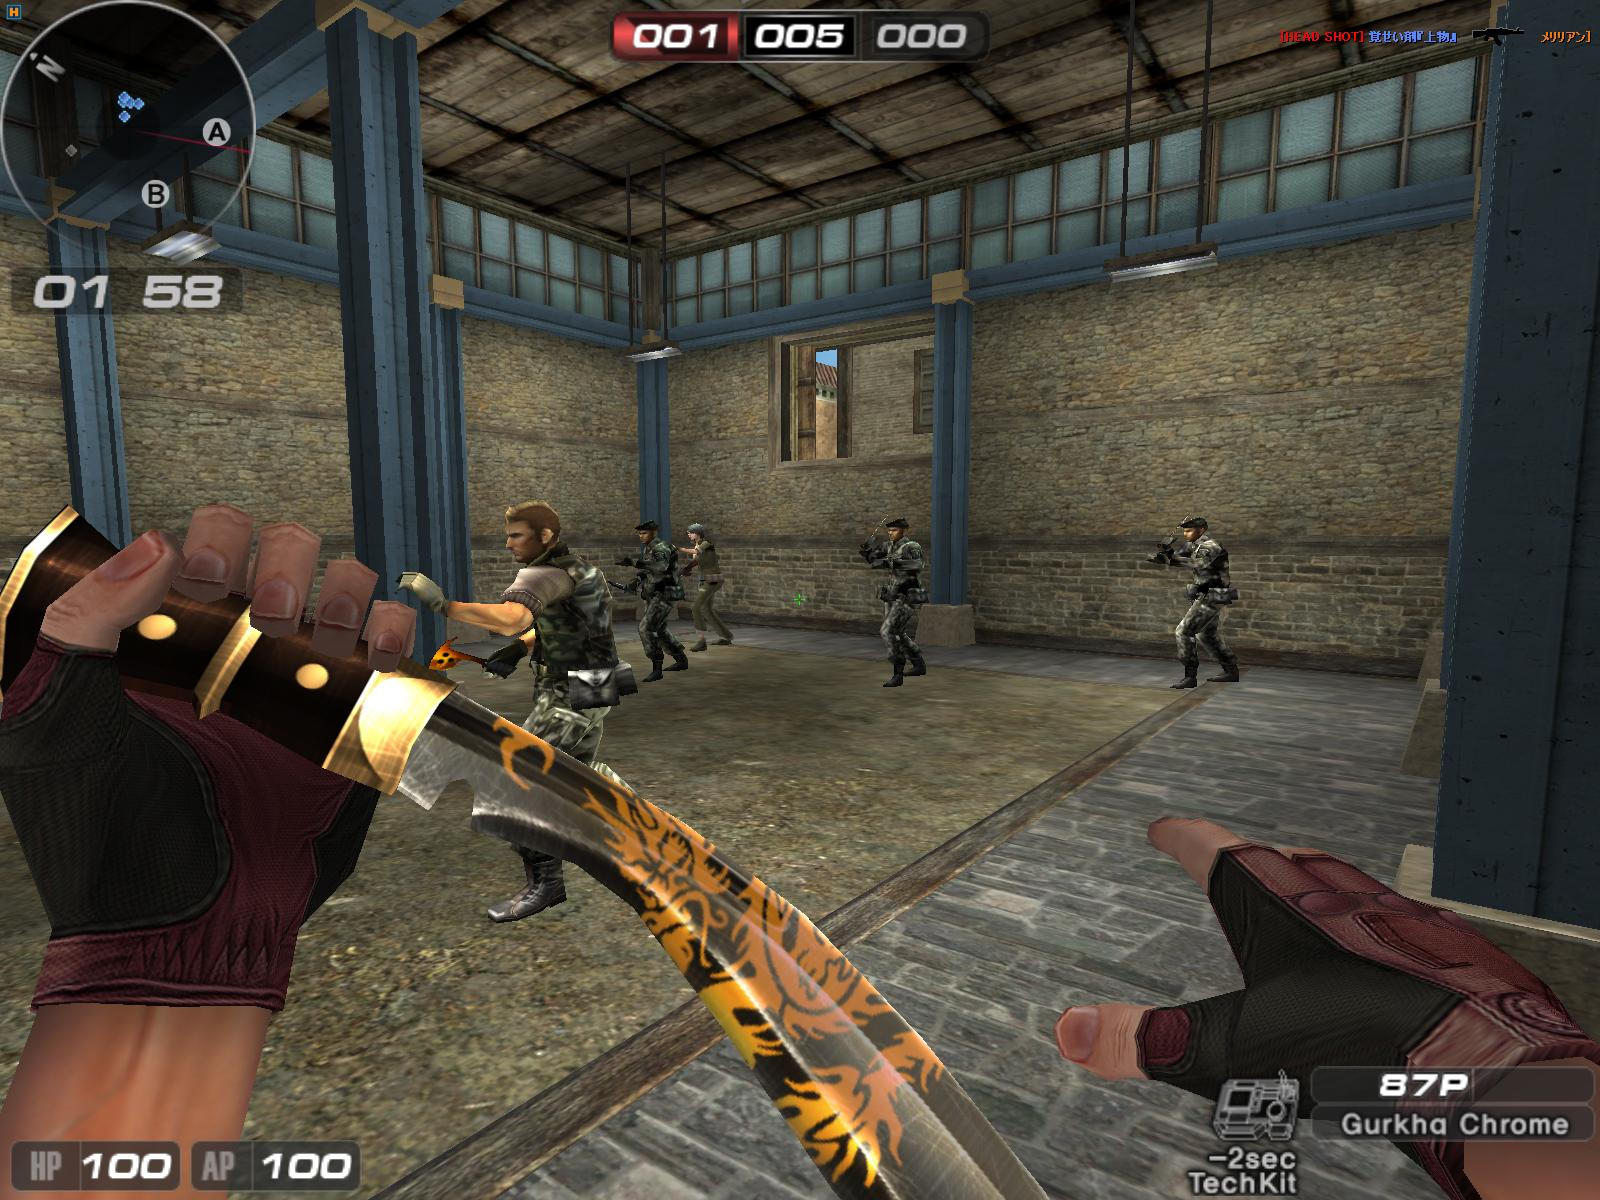 ScreenShot_17.jpg